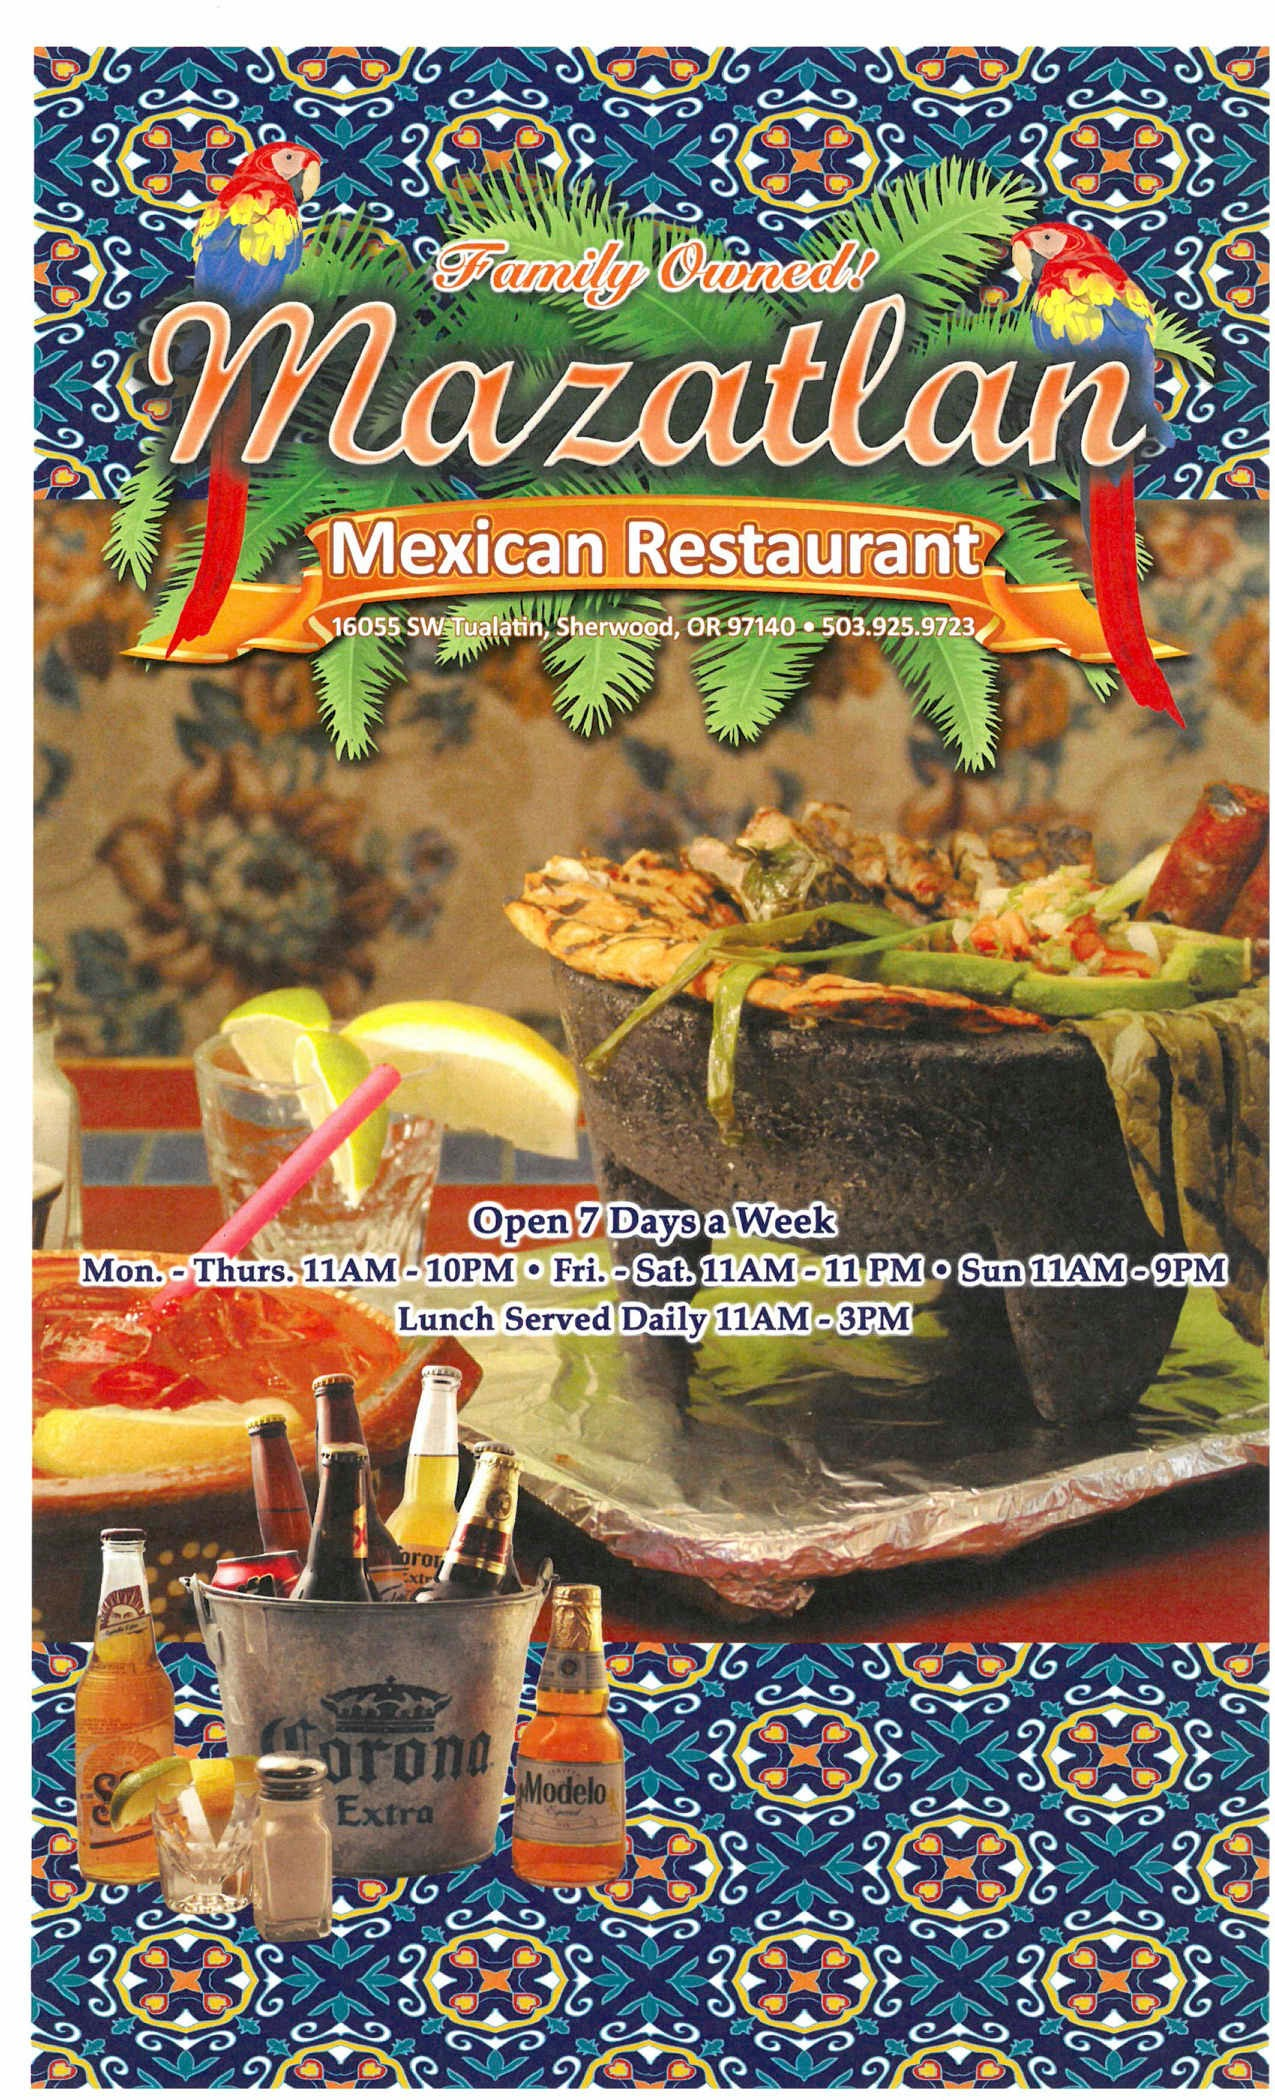 Been to Mazatlan Mexican Restaurant? Share your experiences!